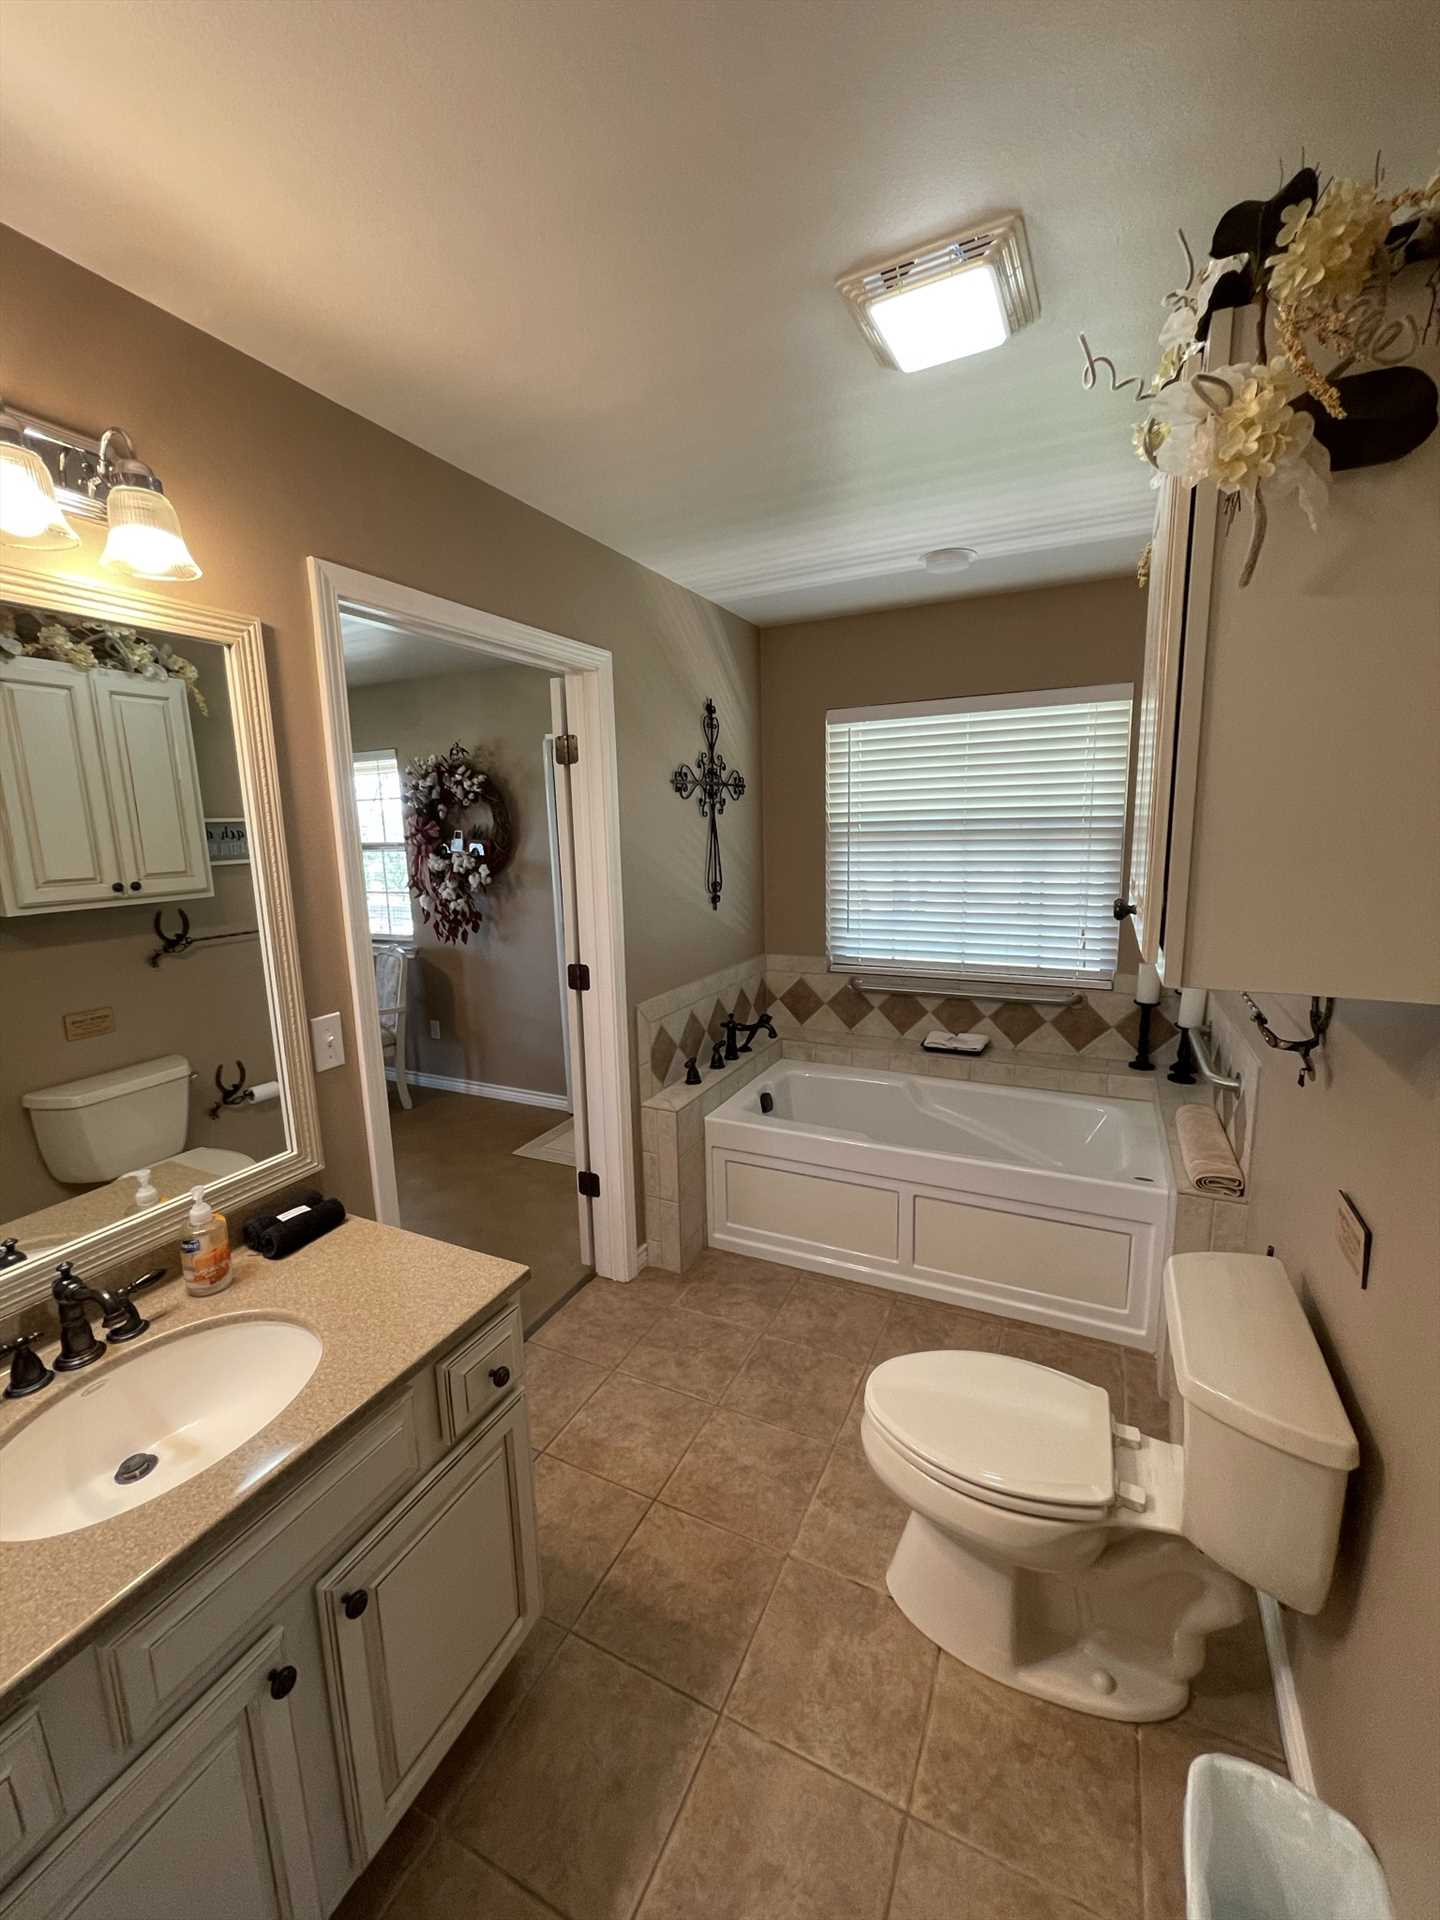 This immaculately clean bathroom features a roomy tub to soak in, and a vanity with plenty of counter space. Clean bath linens are included as part of your stay!